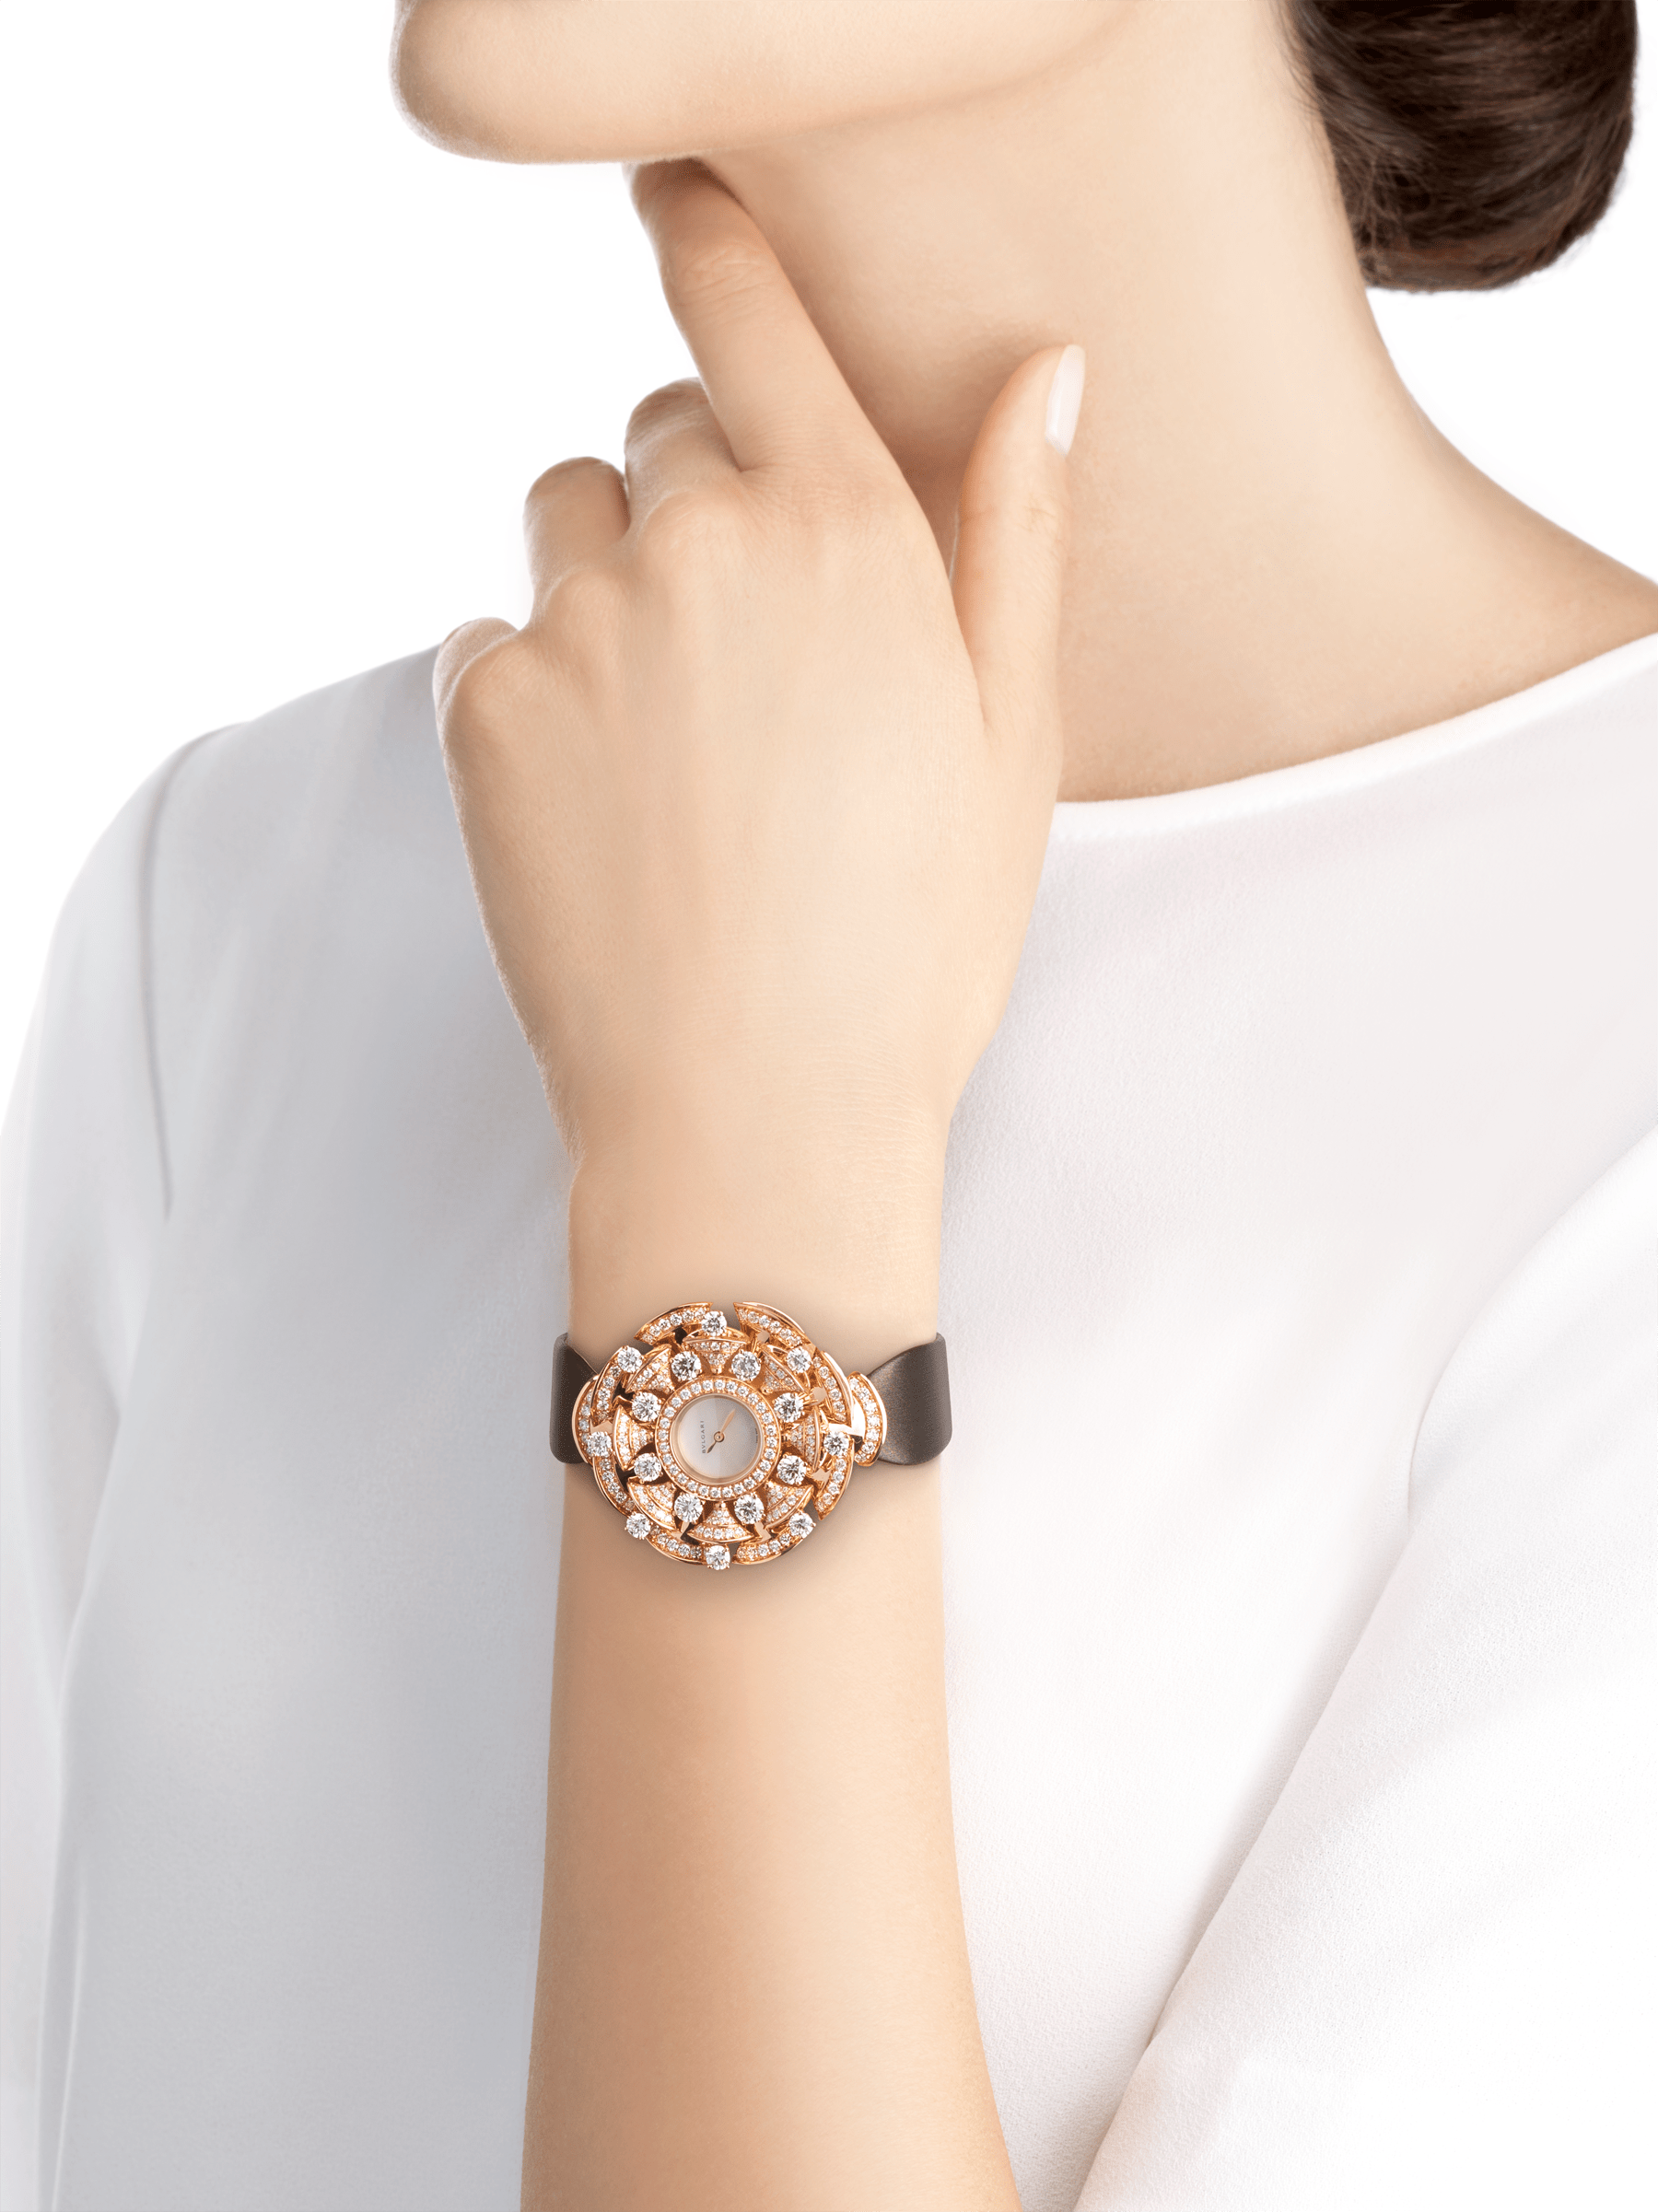 DVAS' DREAM watch with 18 kt rose gold case set with brilliant-cut diamonds, white mother-of-pearl dial and brown satin bracelet 102546 image 3